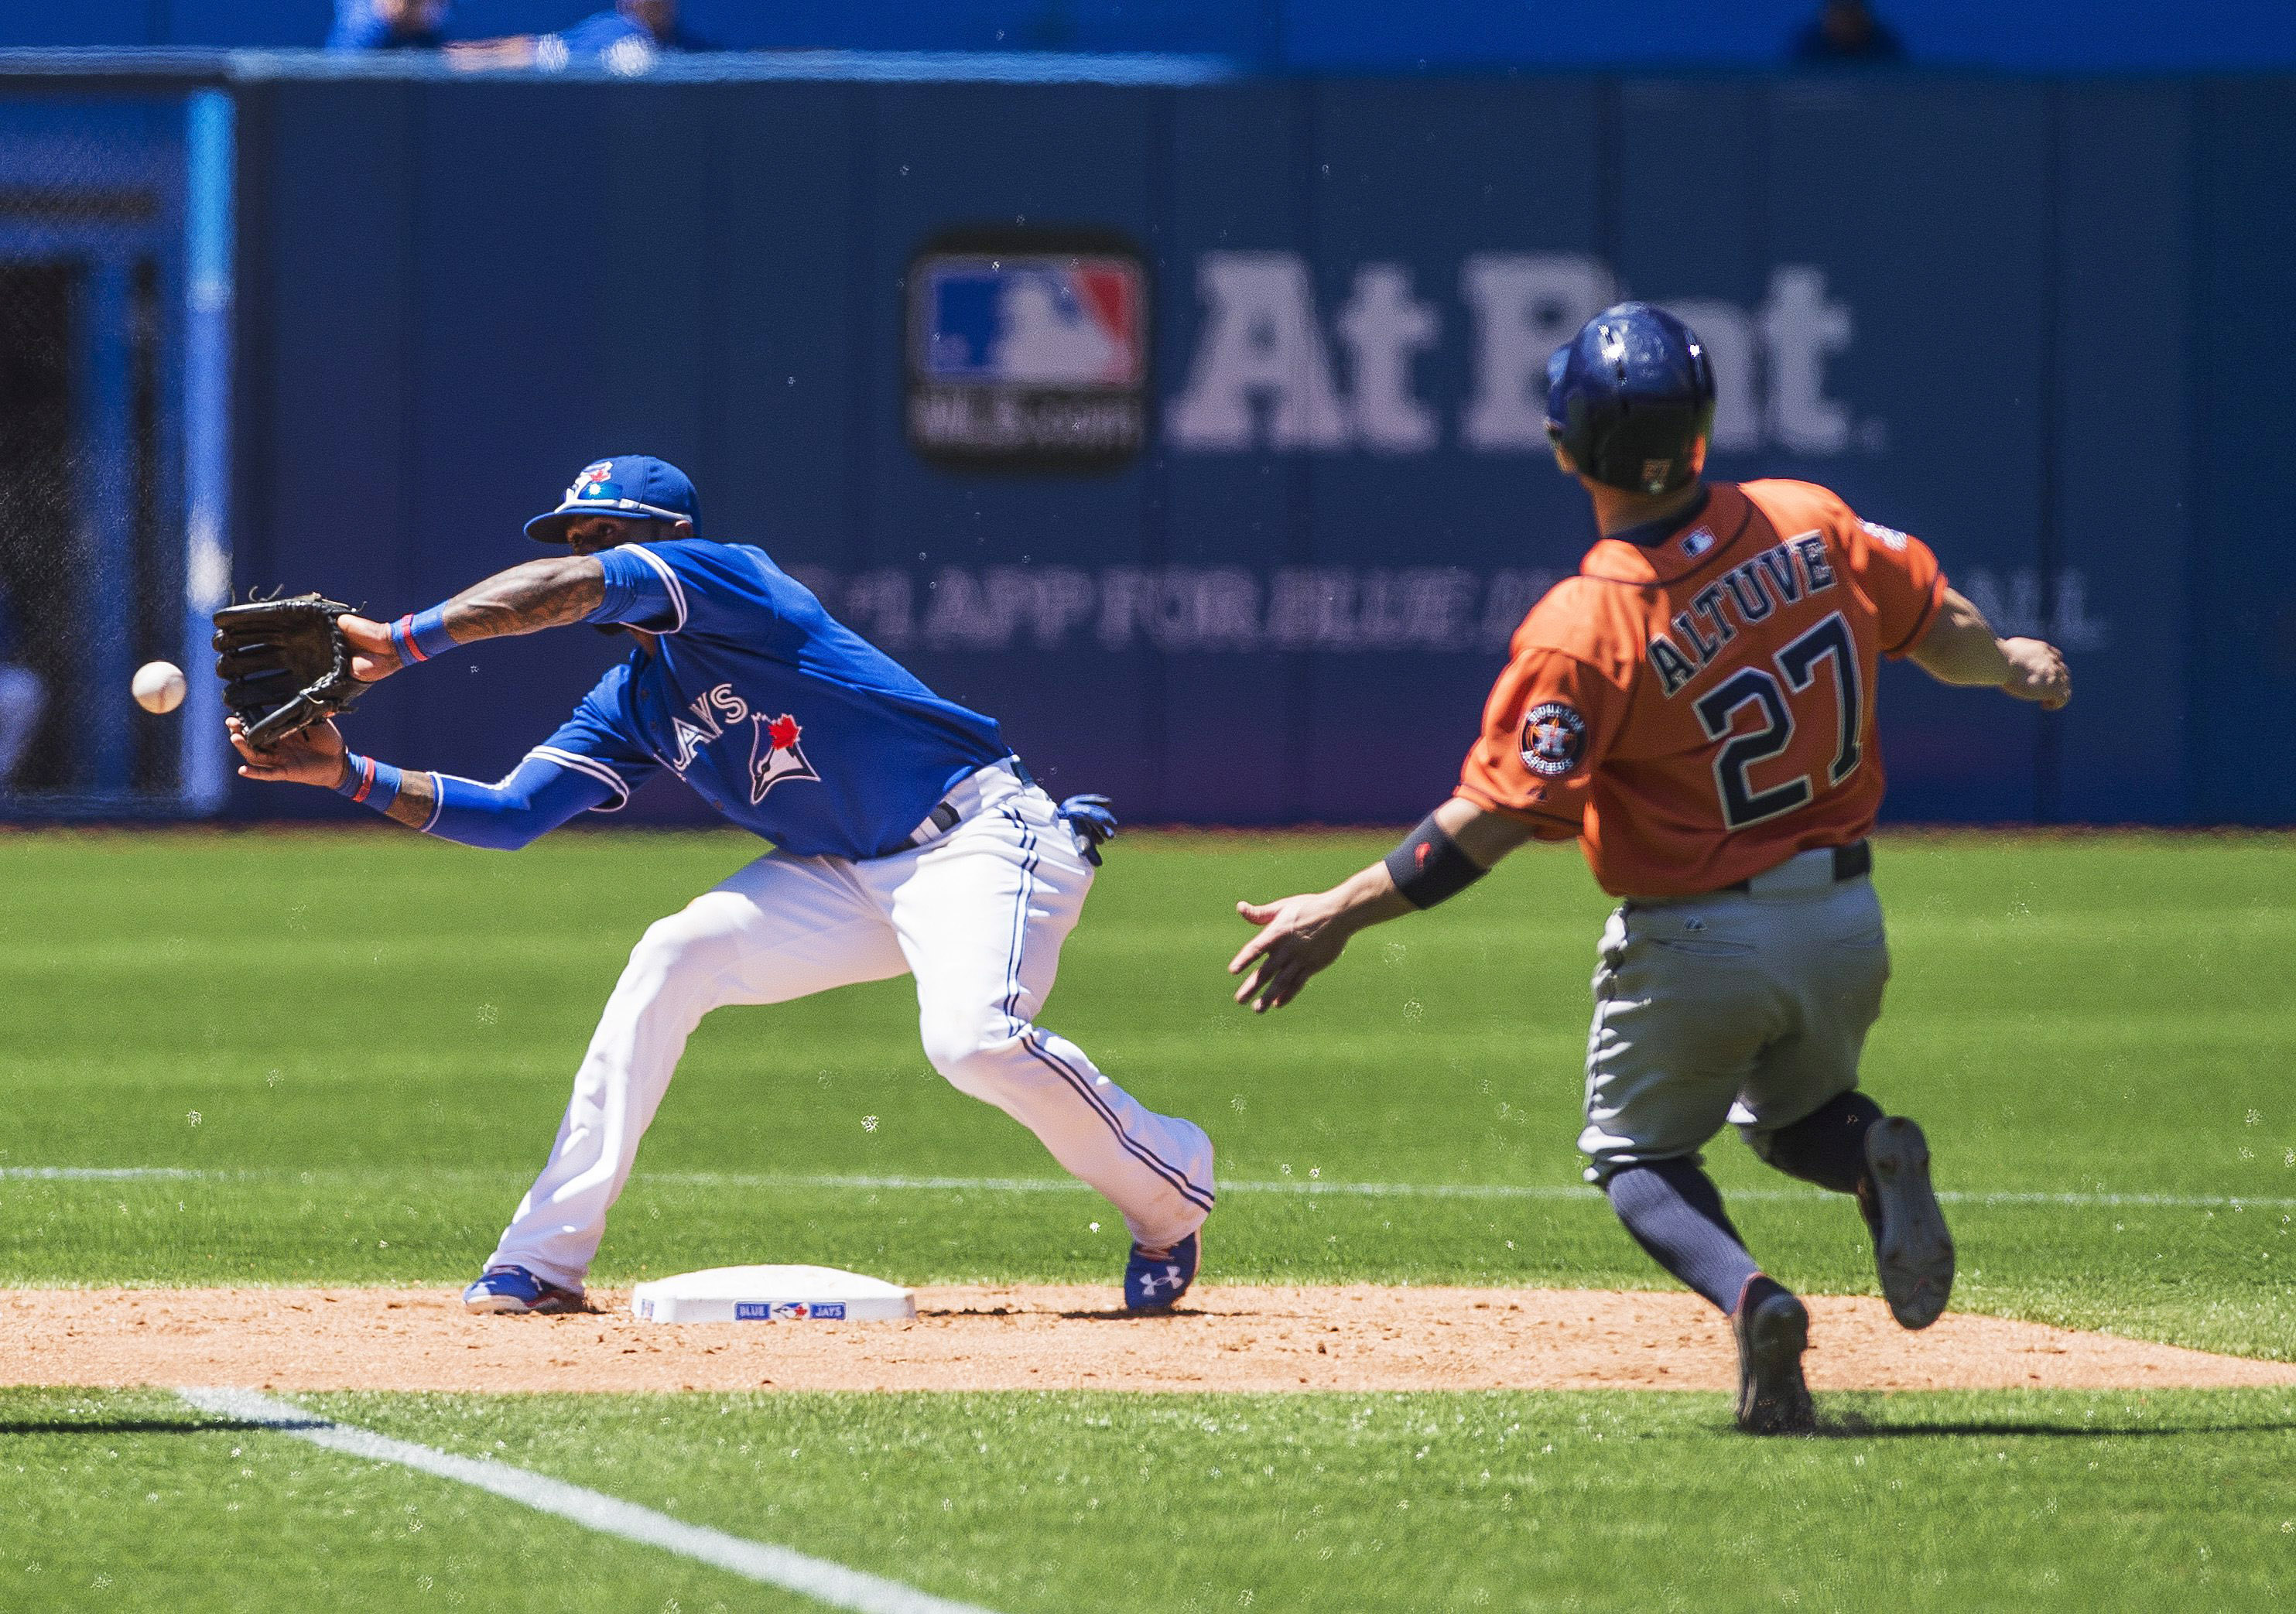 Toronto Blue Jays shortstop Jose Reyes prepares to tag Houston Astros' Jose Altuve as he's picked off stealing second base during the third inning of a baseball game, Saturday, June 6, 2015 in Toronto. (Aaron Vincent Elkaim/The Canadian Press via AP) MAND